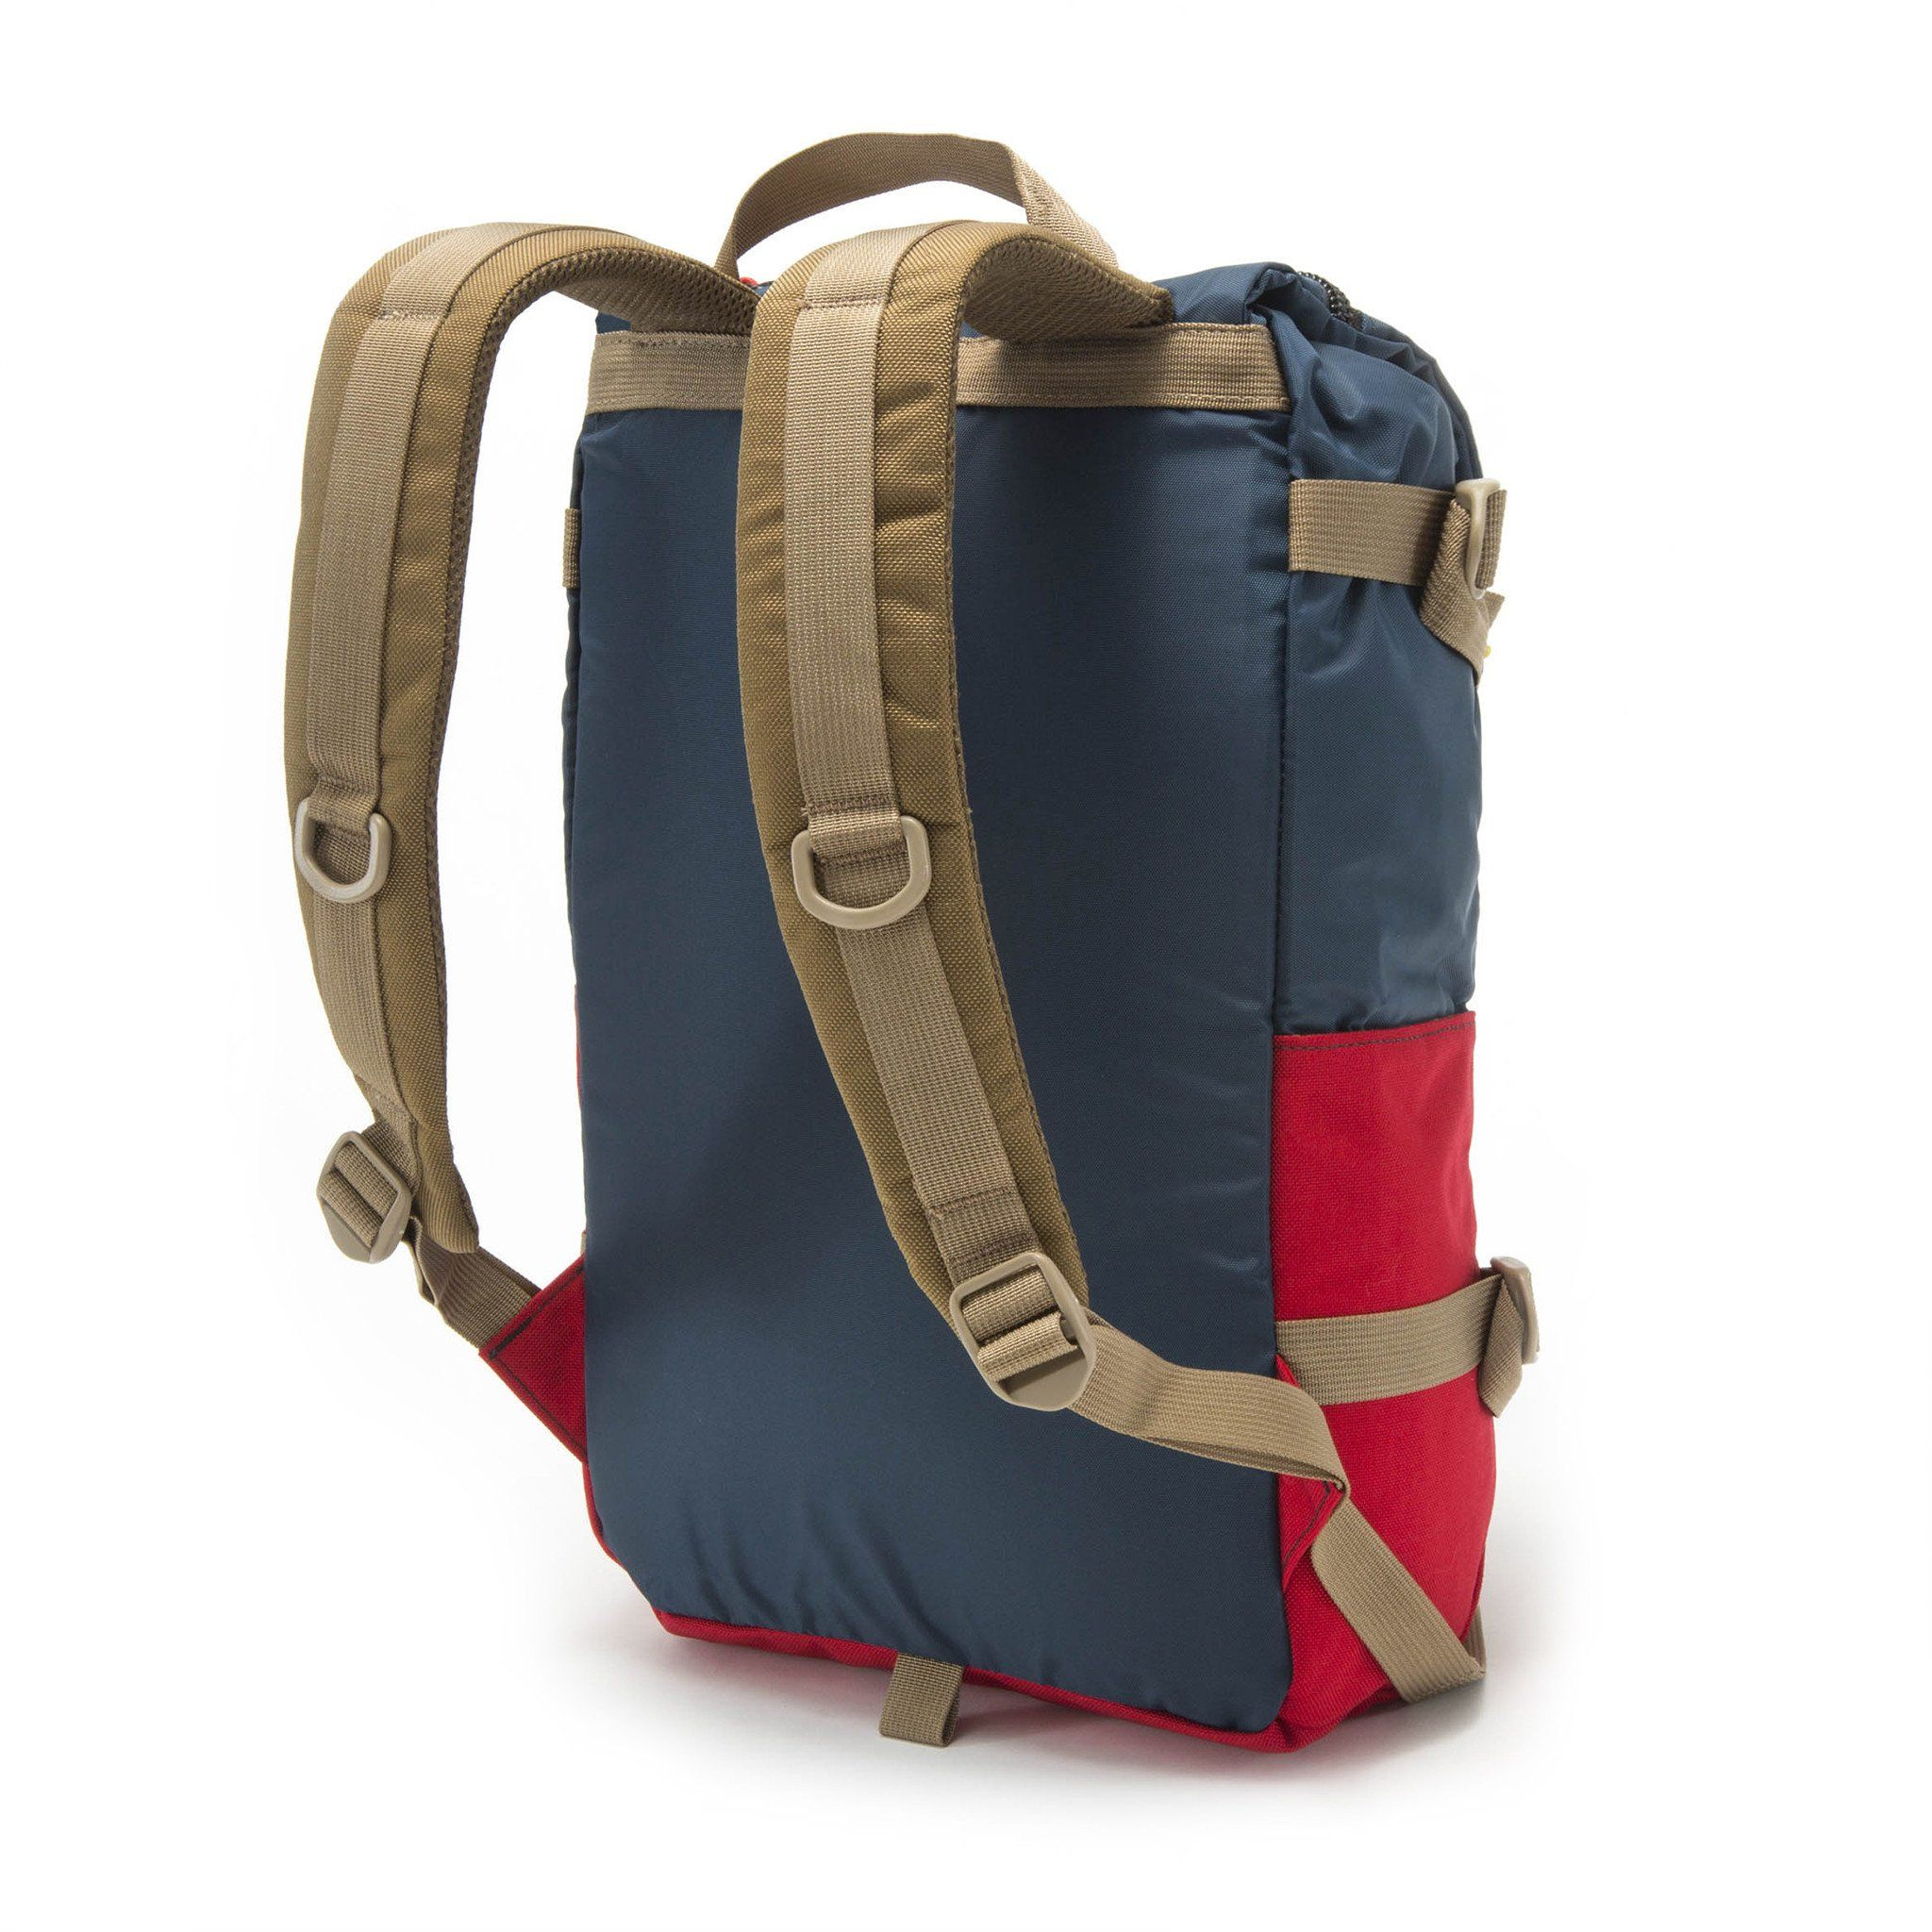 Rover Pack | Bags and Travel Gear | Backpacks, Bags